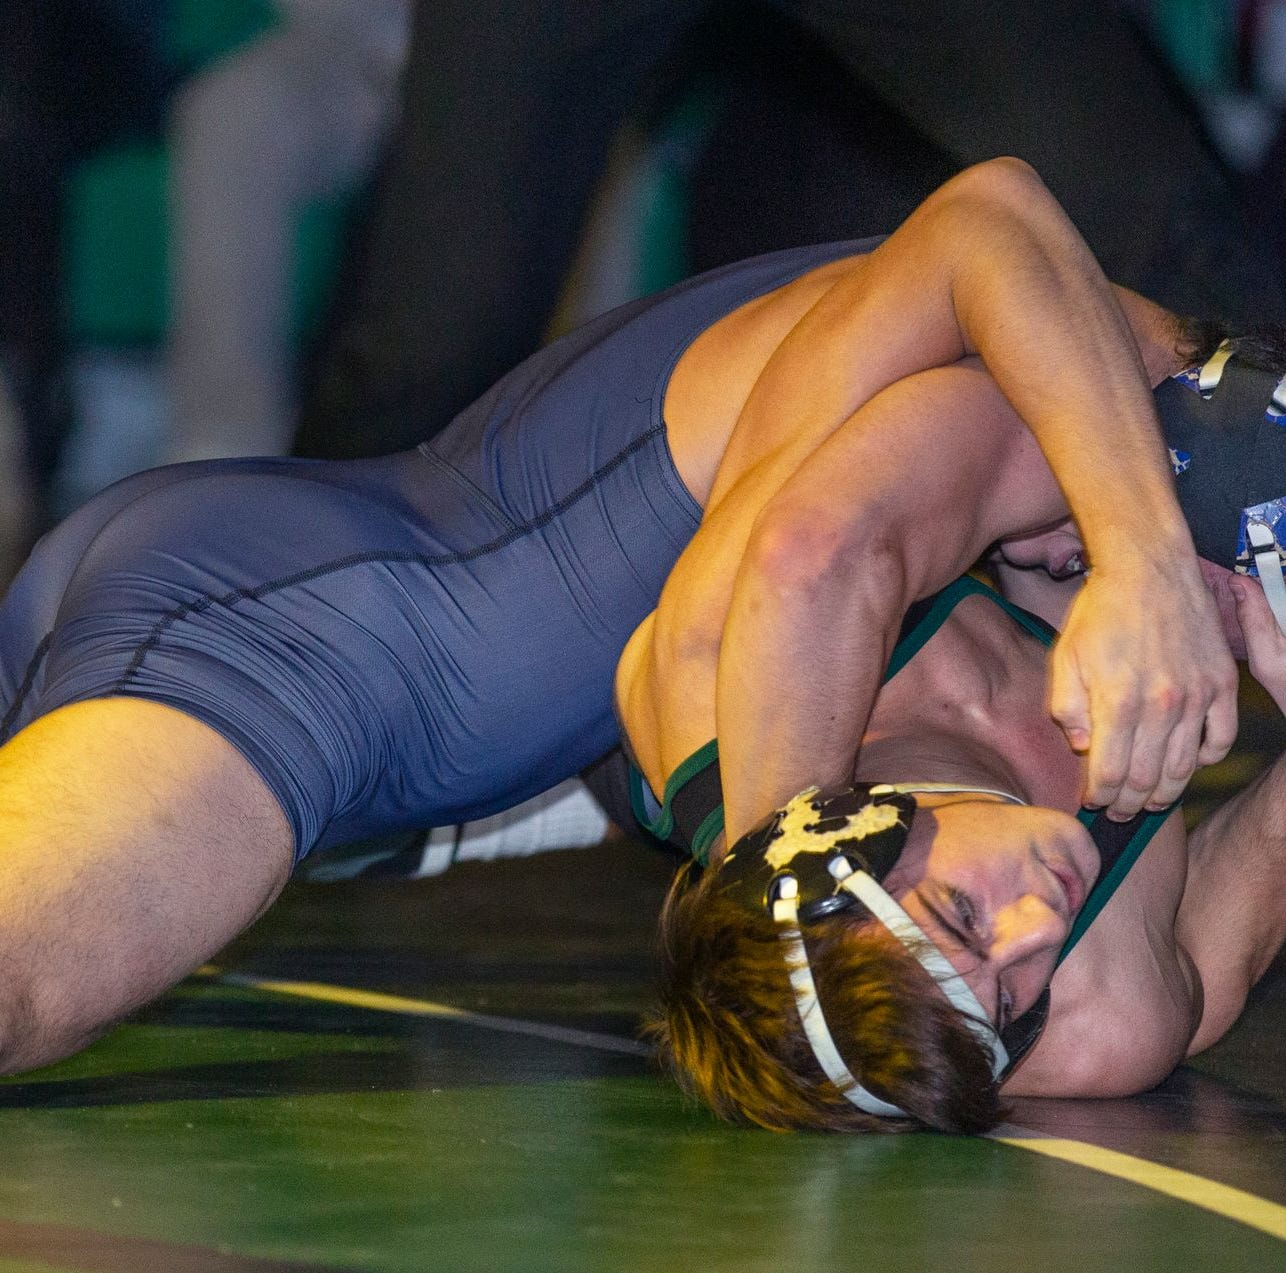 NJ wrestling: The NJWWA State Top 20, see who is in and who moved up